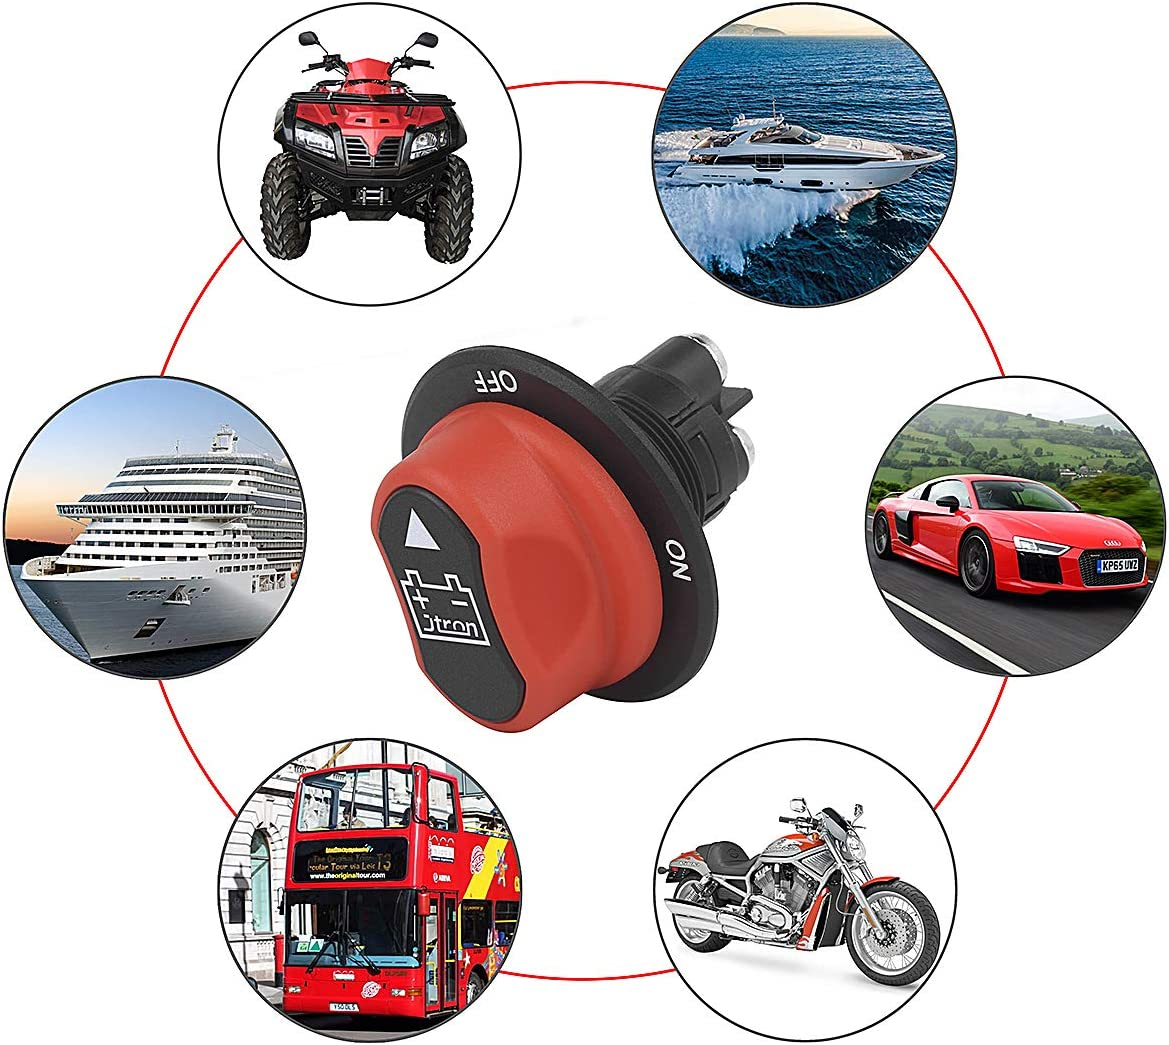 BONATECH Black Brass Battery Isolator ON Off Kill Switches Car Race Rally Switches for Motorcycles Cars Boats